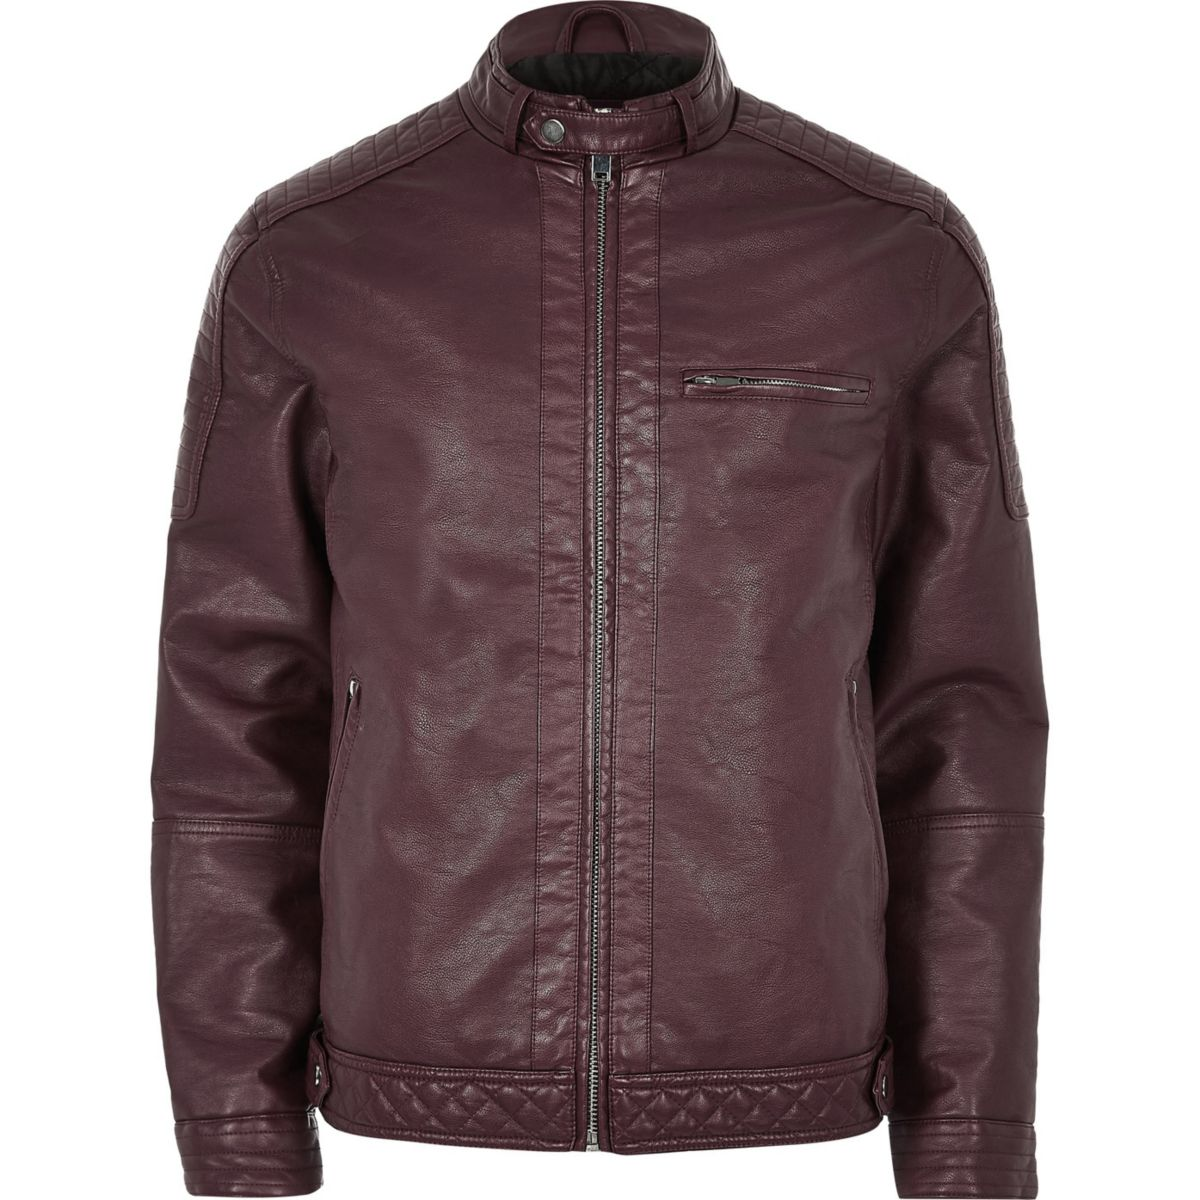 Big and Tall red faux leather racer jacket